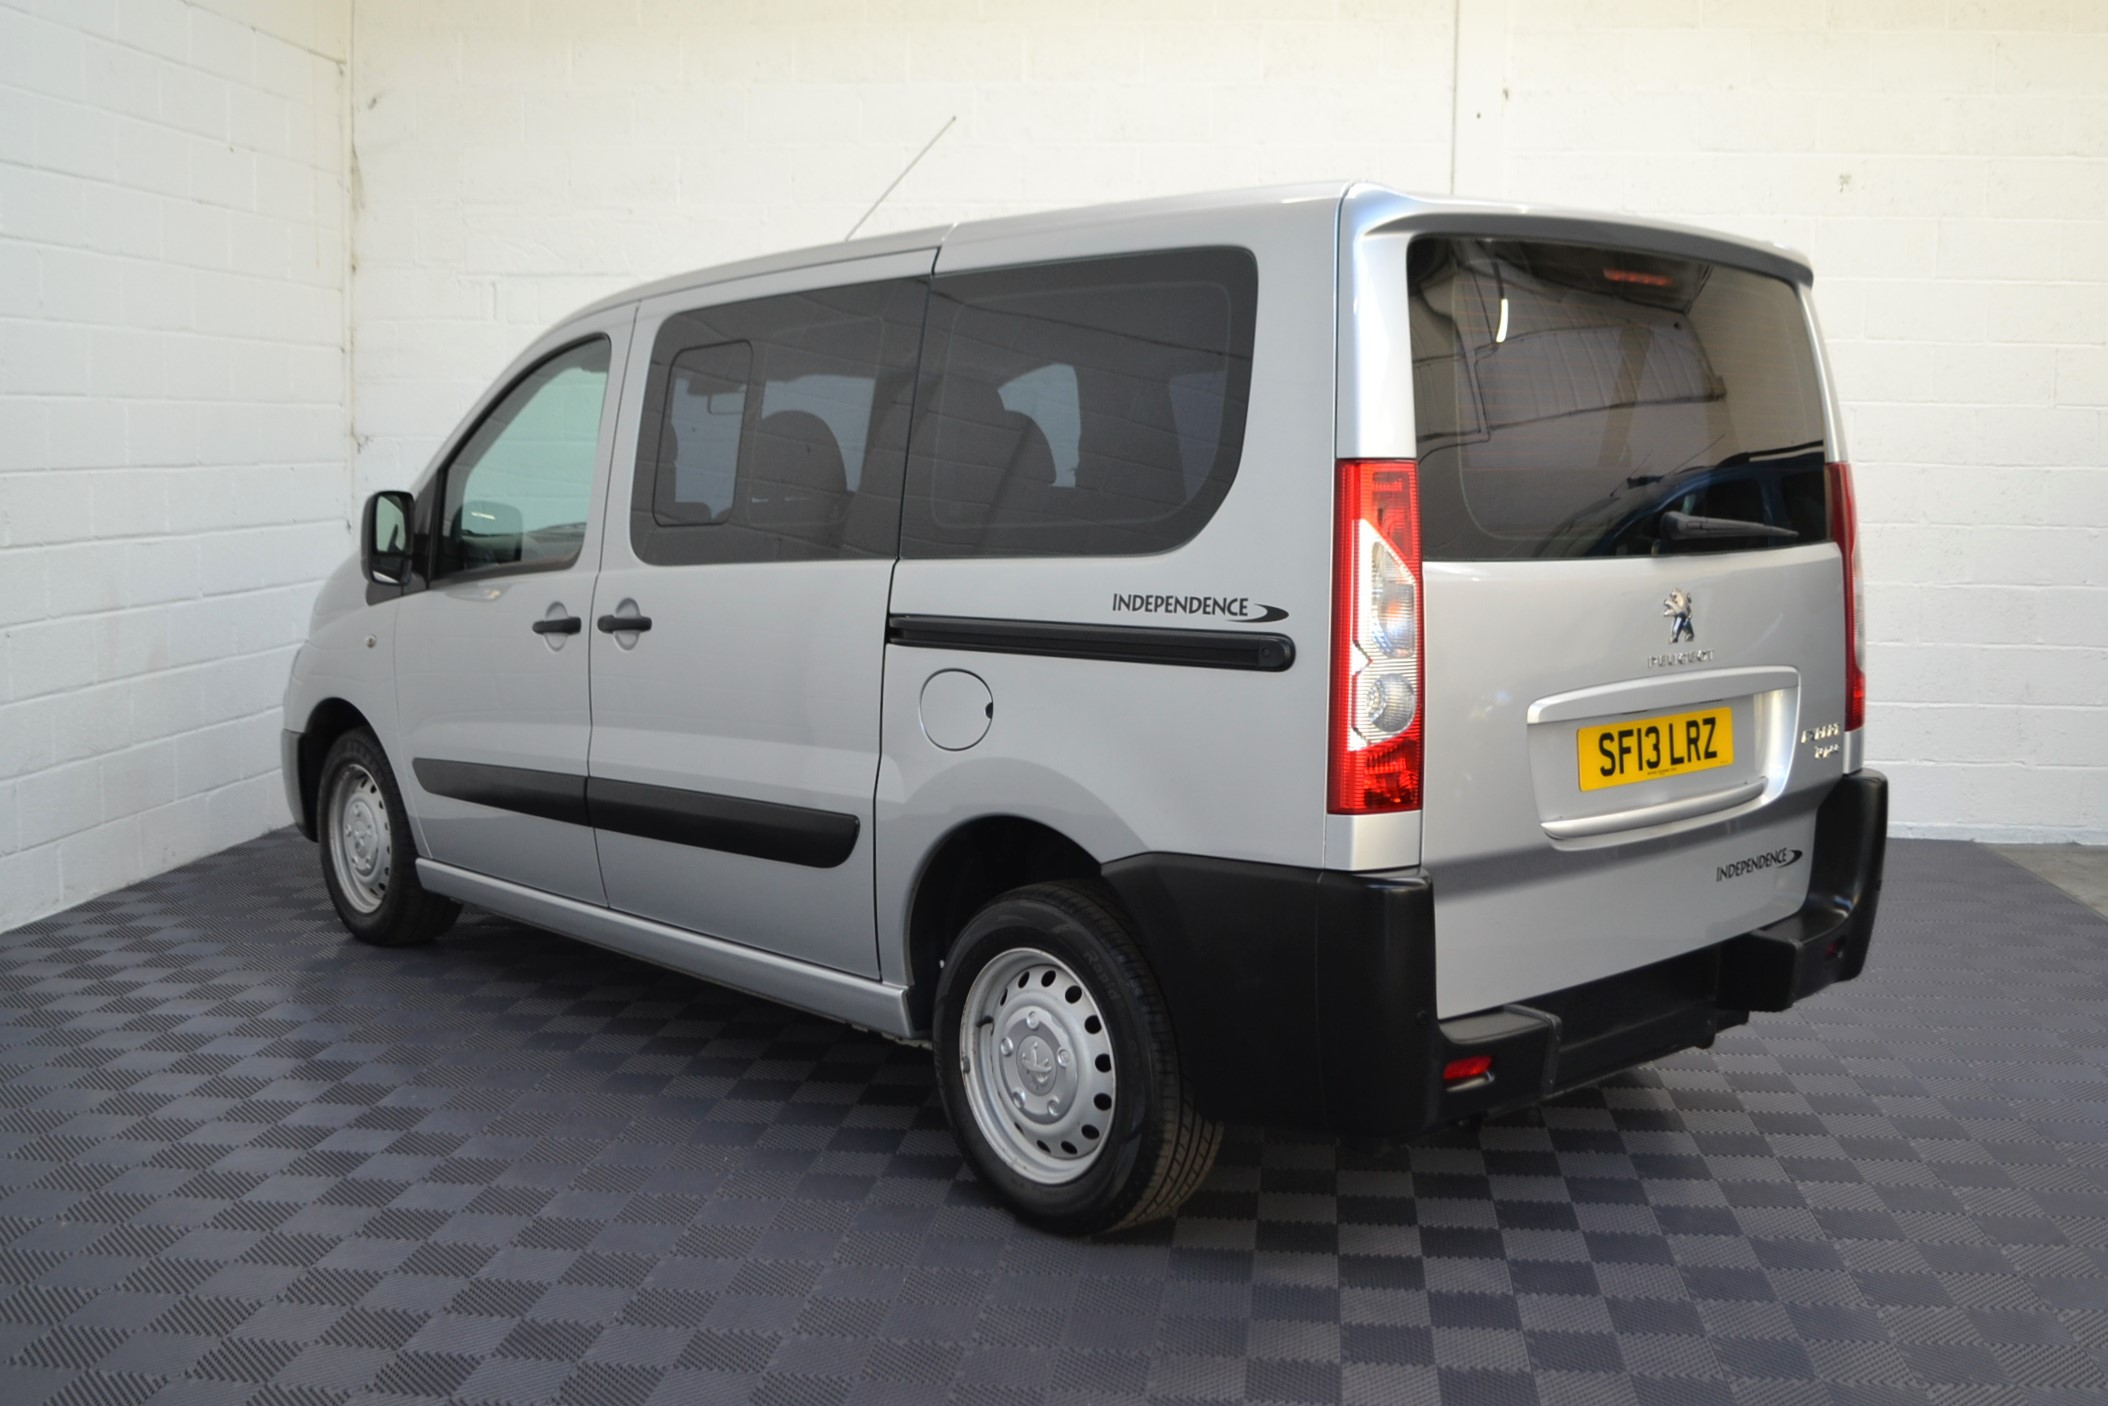 Disabled Cars For Sale Bristol Wheelchair Accessible Vehicles Used For Sale Somerset Devon Dorset Bath Peugeot Expert SF13 LRZ 4